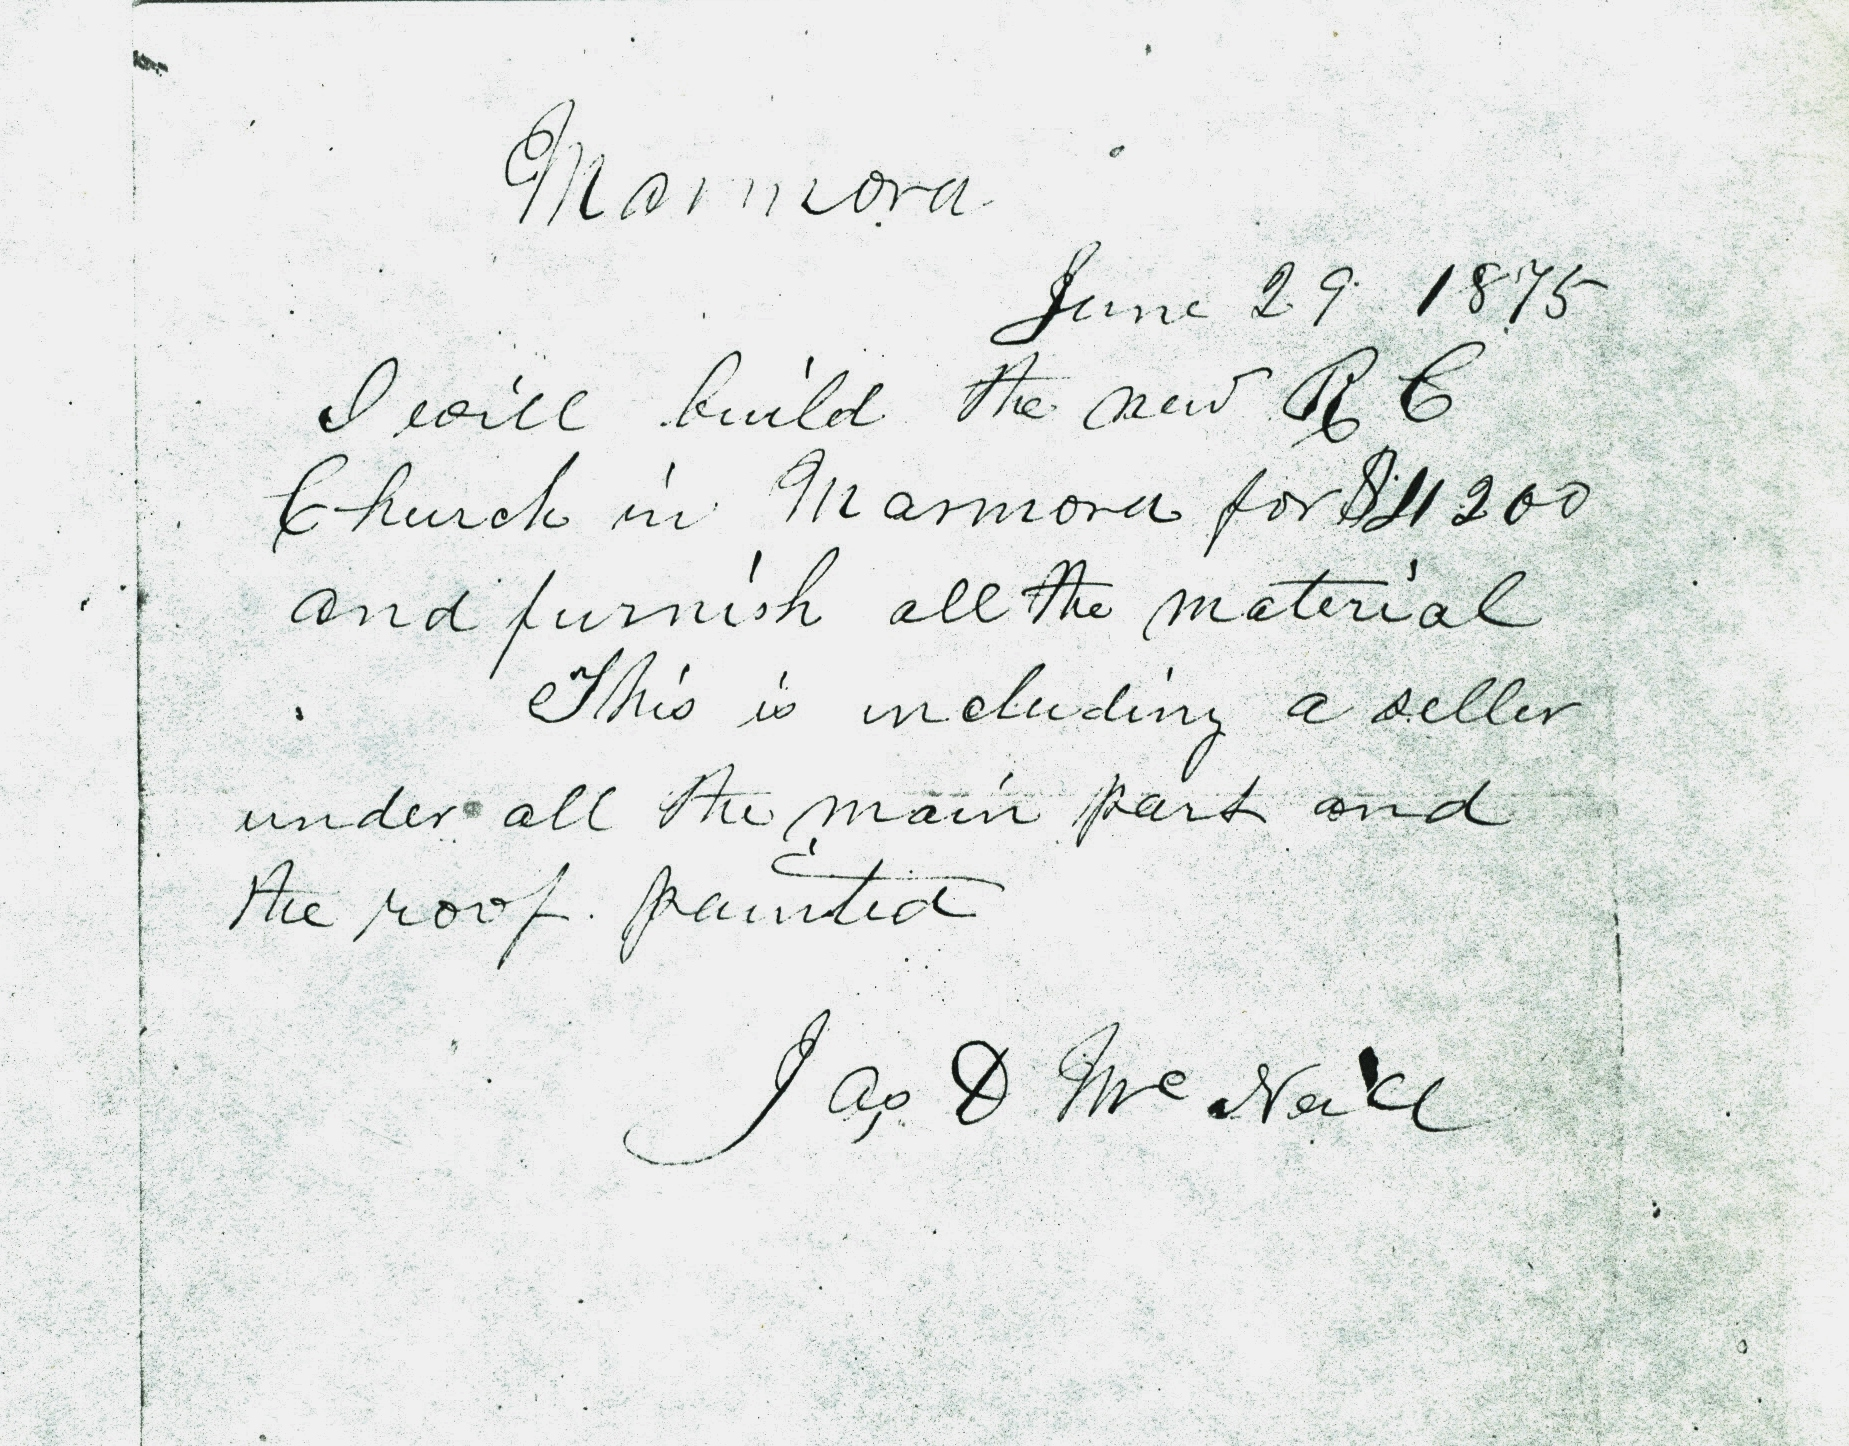 """The contract: """"I will build the new R.C. church in Marmora for $11,200.00 and furnish all the material. This is including a 'seller' (cellar) underneath the main part and the roof painted. James McNeill"""